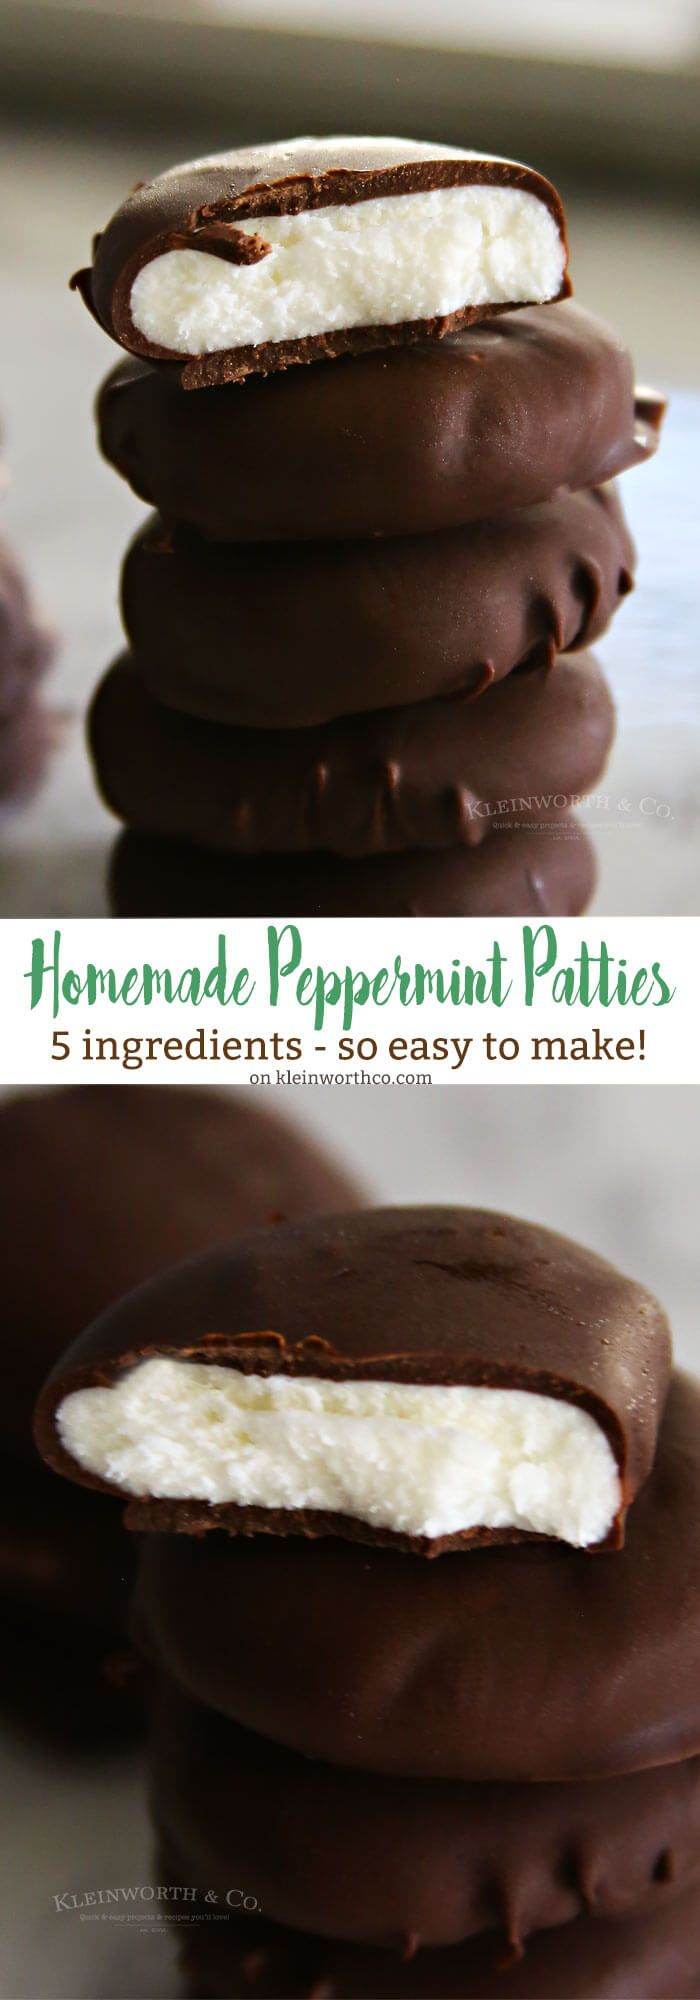 Homemade Peppermint Patties ~ one of the easiest minty desserts to make for St. Patrick's Day or any other holiday!